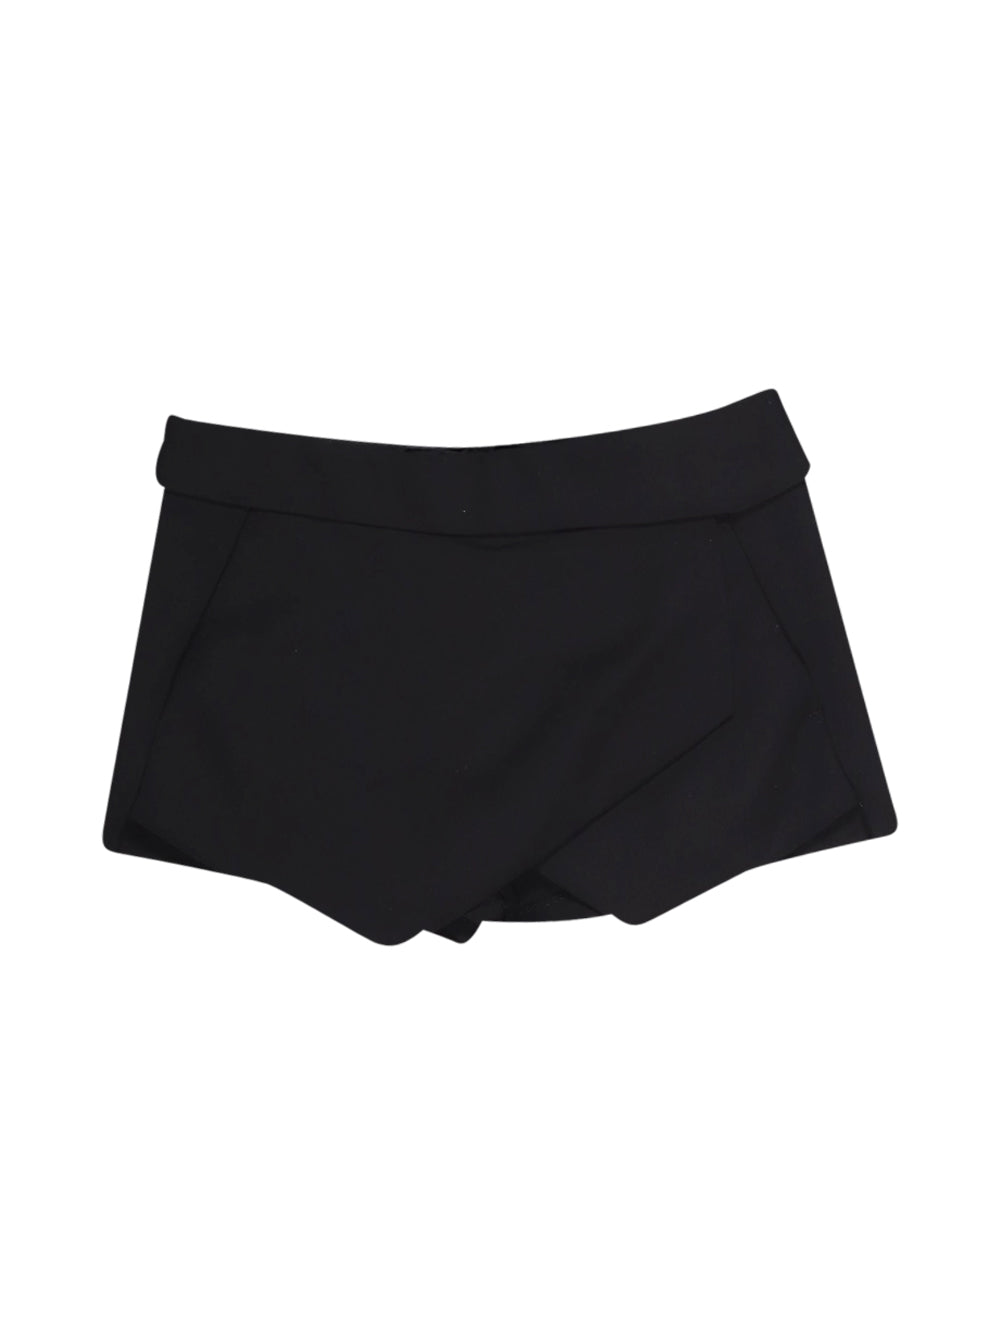 Front photo of Preloved Zara Black Woman's shorts - size 8/S